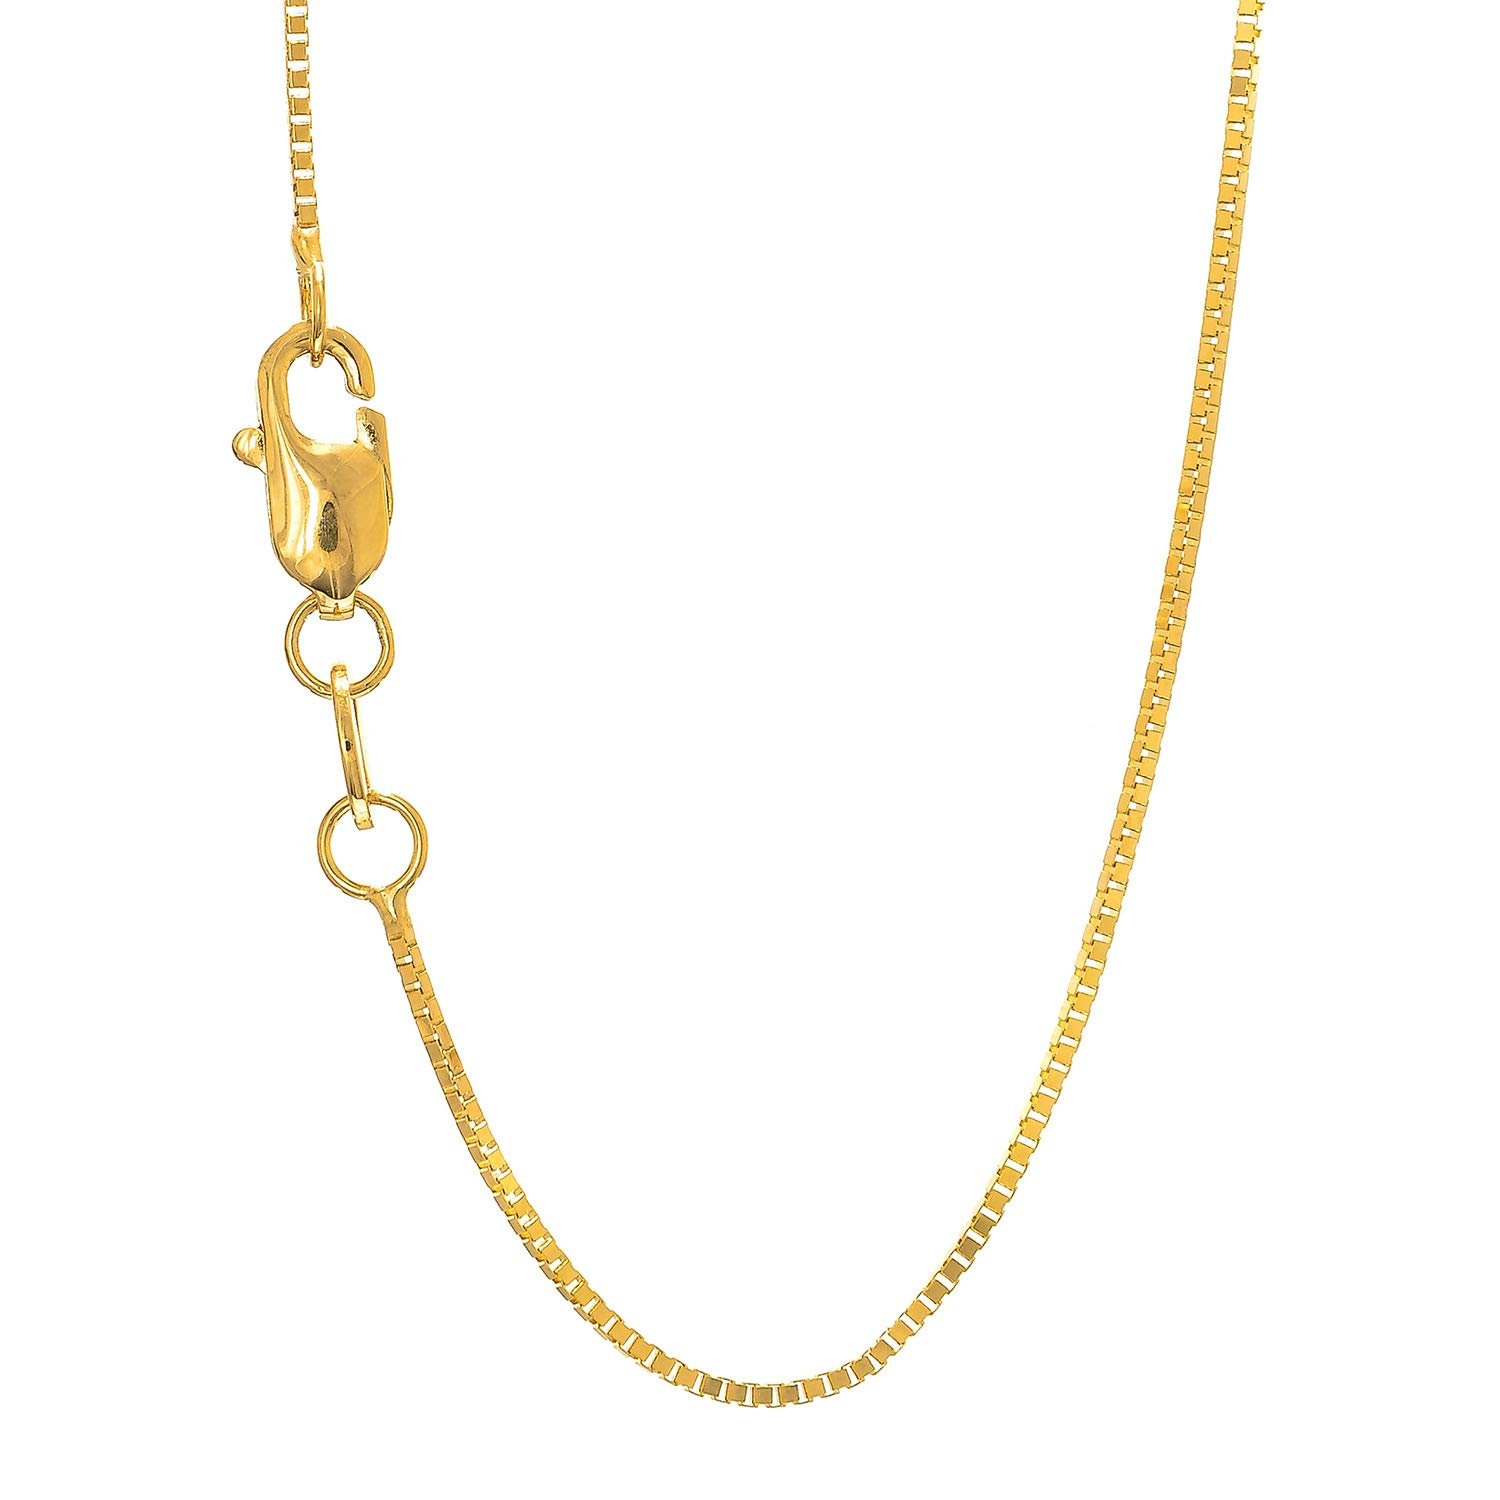 14K Yellow or White Gold 0.70mm Shiny Classic Box Chain Necklace for Pendant and Charm with Lobster Clasp (16'', 18'', 20'' or 24 inch